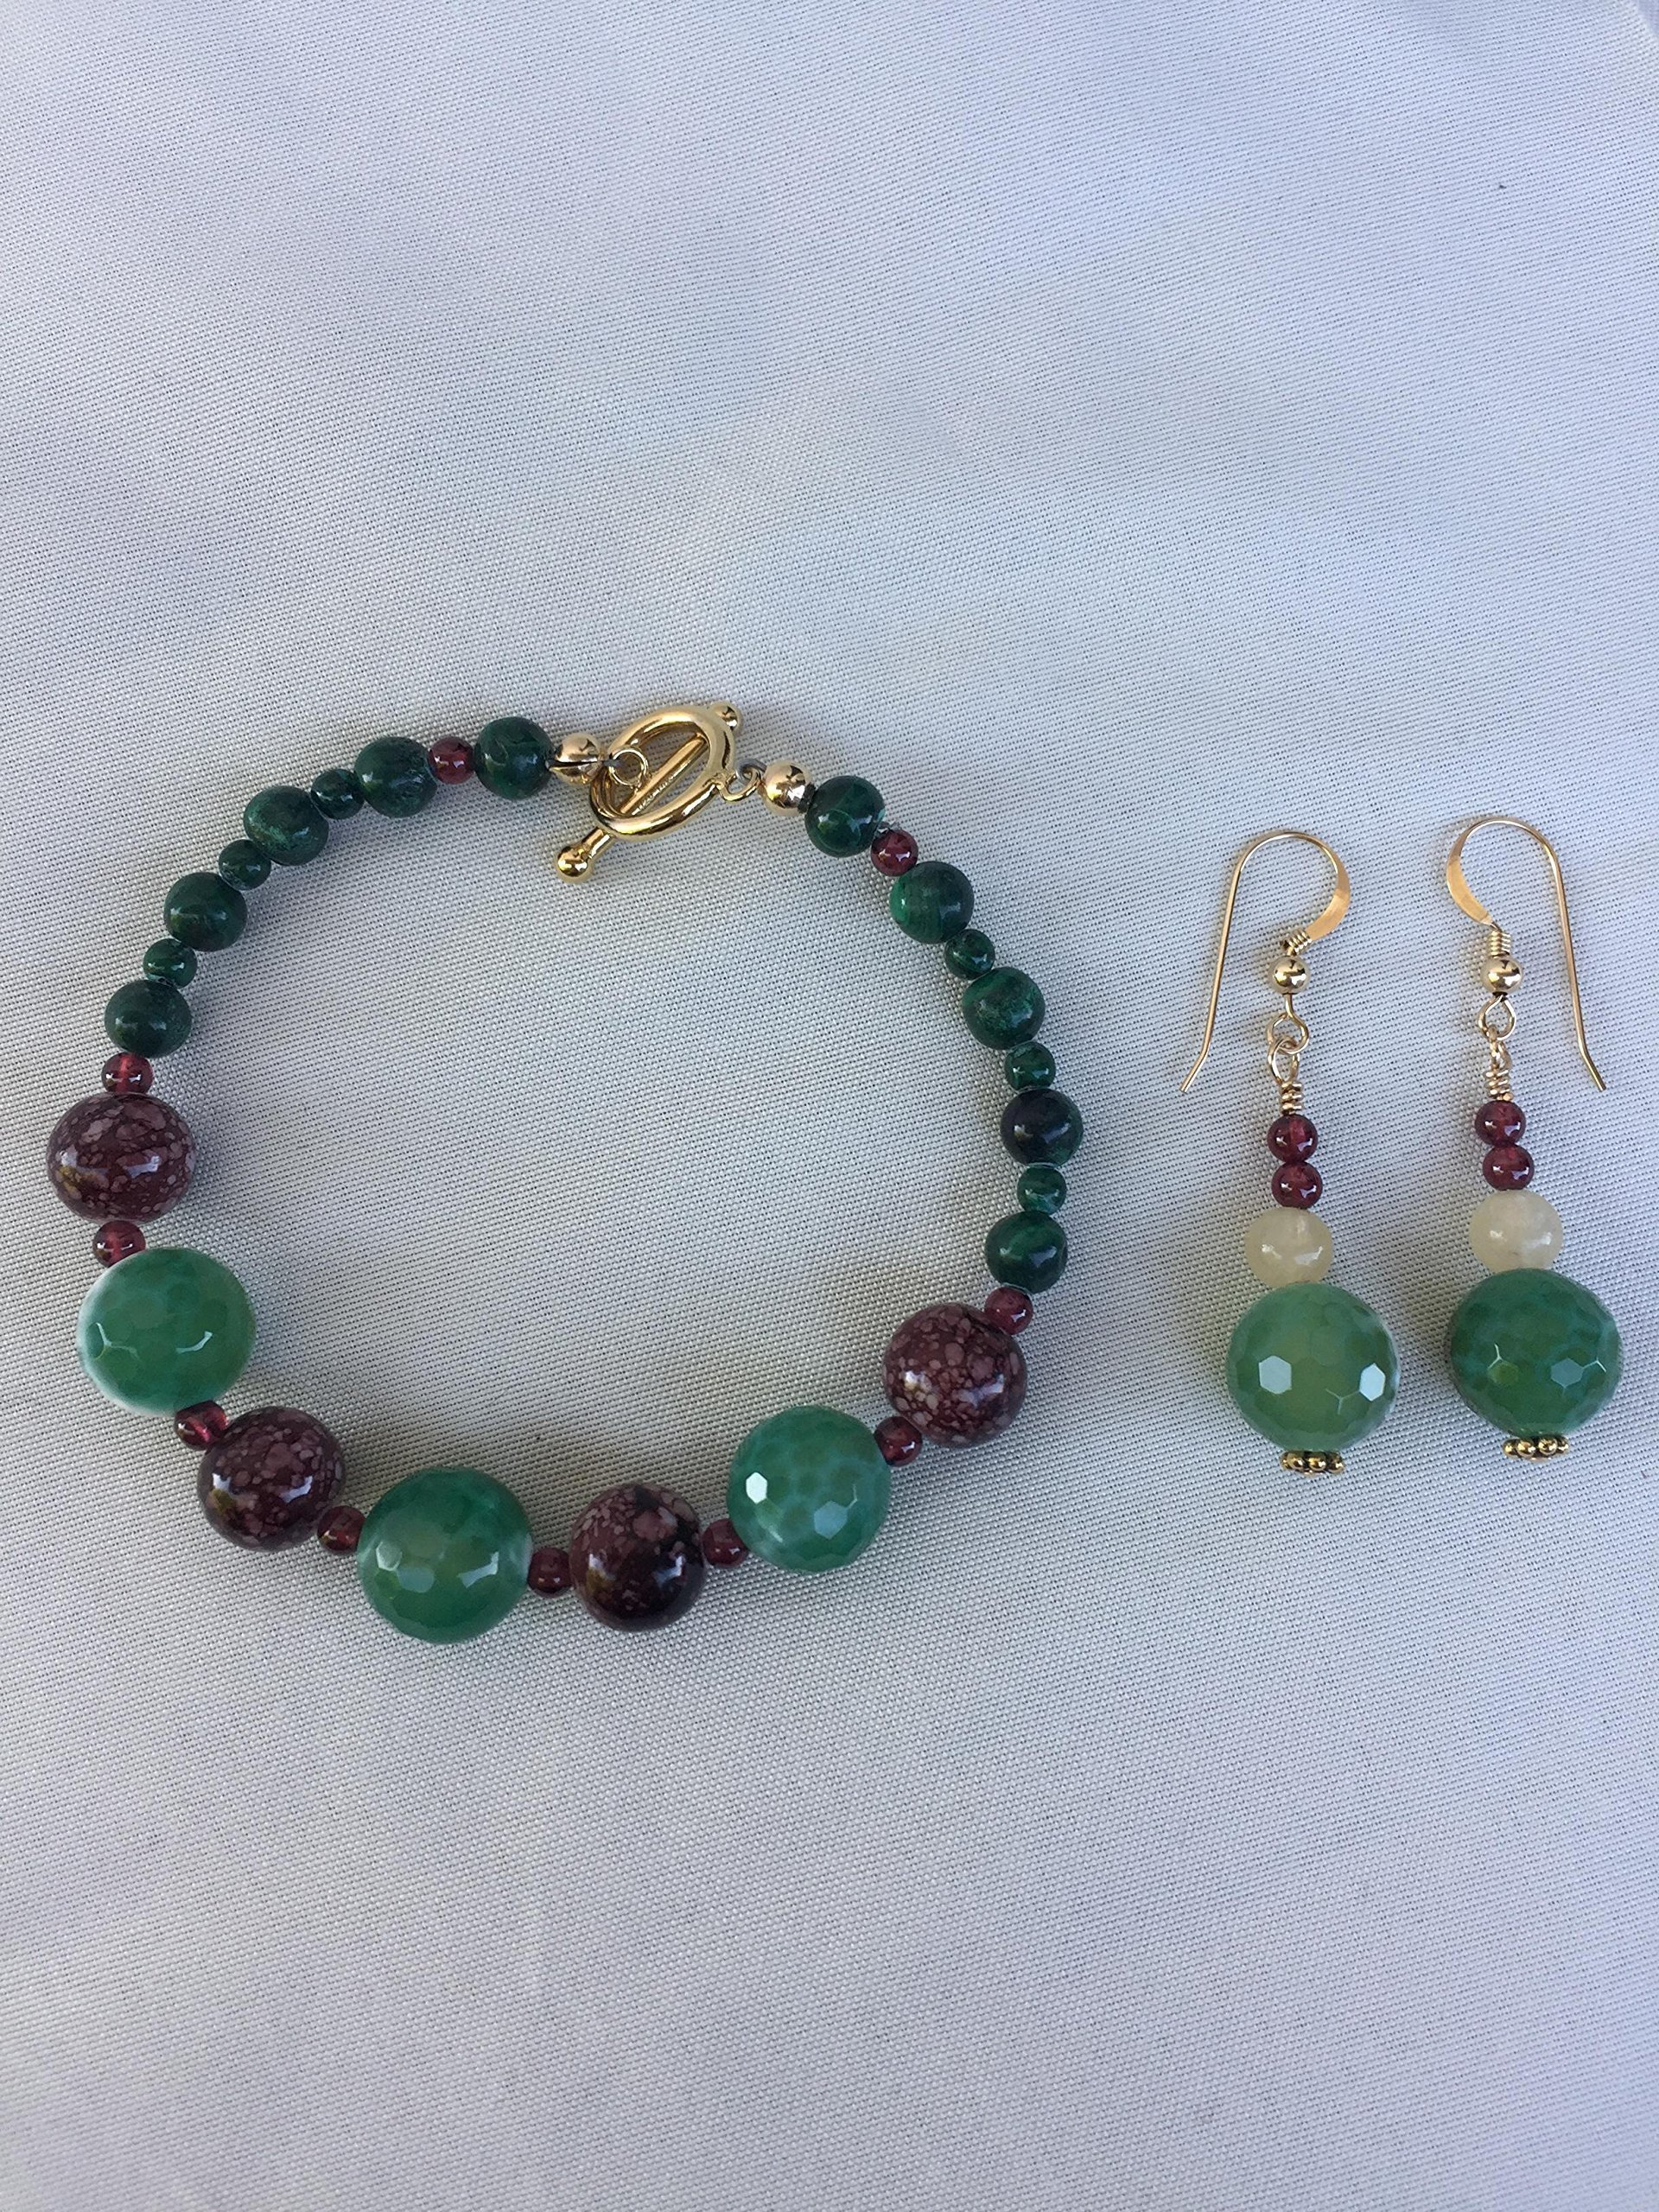 Gemstone handmade Christmas bracelet and earrings. Mixed gemstones in green and red. One of a kind